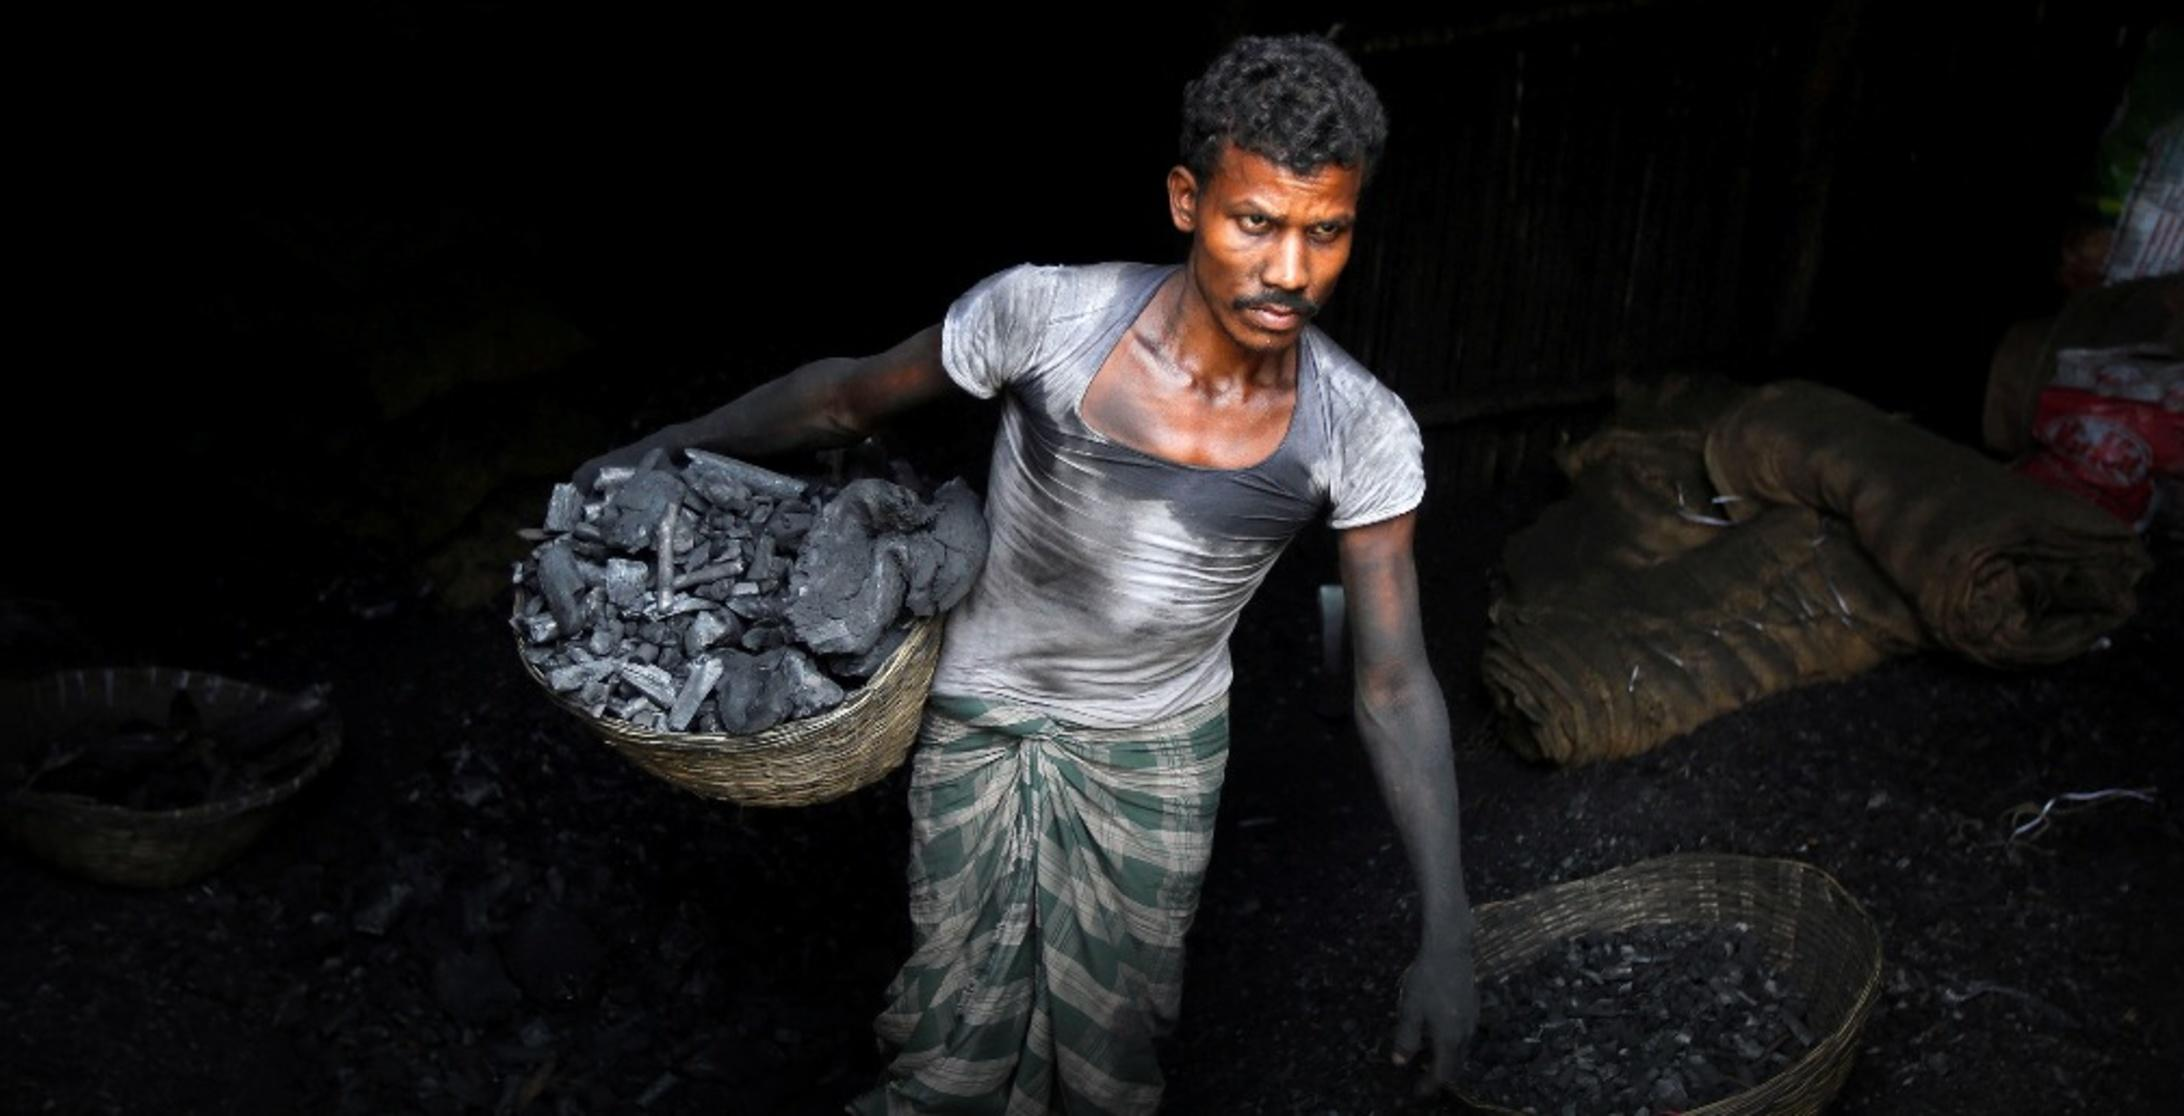 Explained: Why India Is Facing An Energy Crisis Right Now